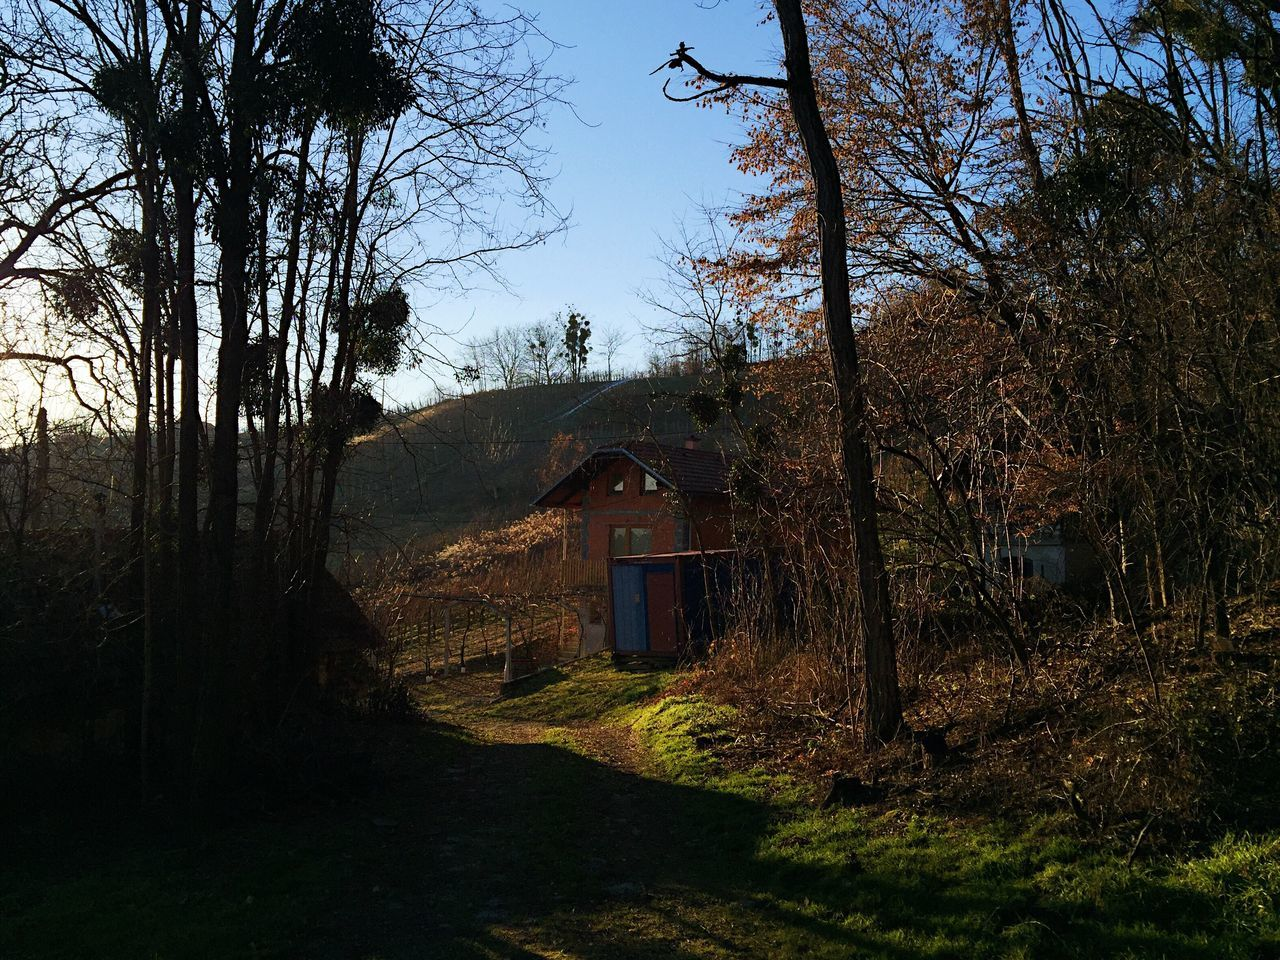 Magic hour at Lendavske Gorice, Slovenia, 2016. Lendava Lendavske Gorice Slovenia Landscape Nature Vineyard Tree Magic Hour & Weather Magic Hour Forrest Outdoors Winter Afternoon Light And Shadow Vinery